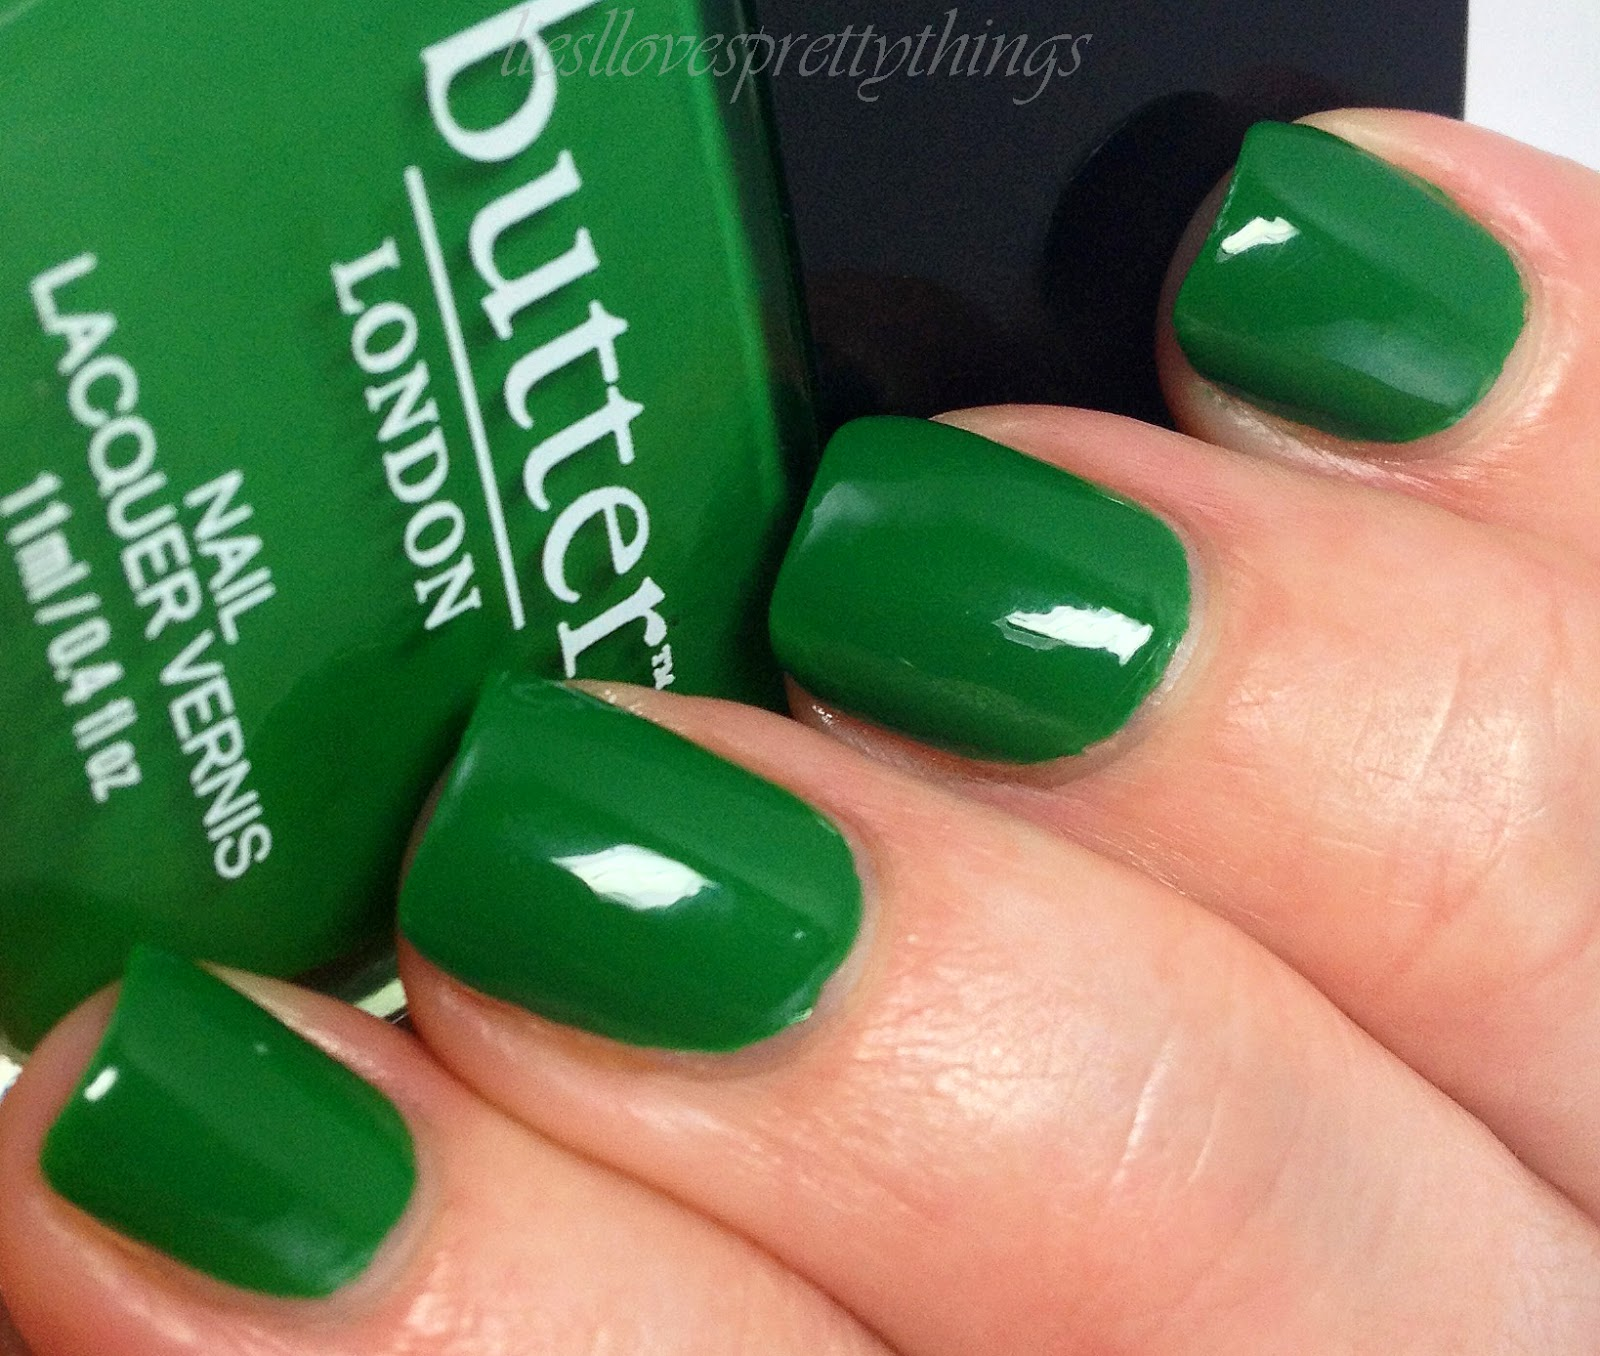 butter LONDON Summer 2014 Lolly Brights-- Sozzled Nail Lacquer swatch and review